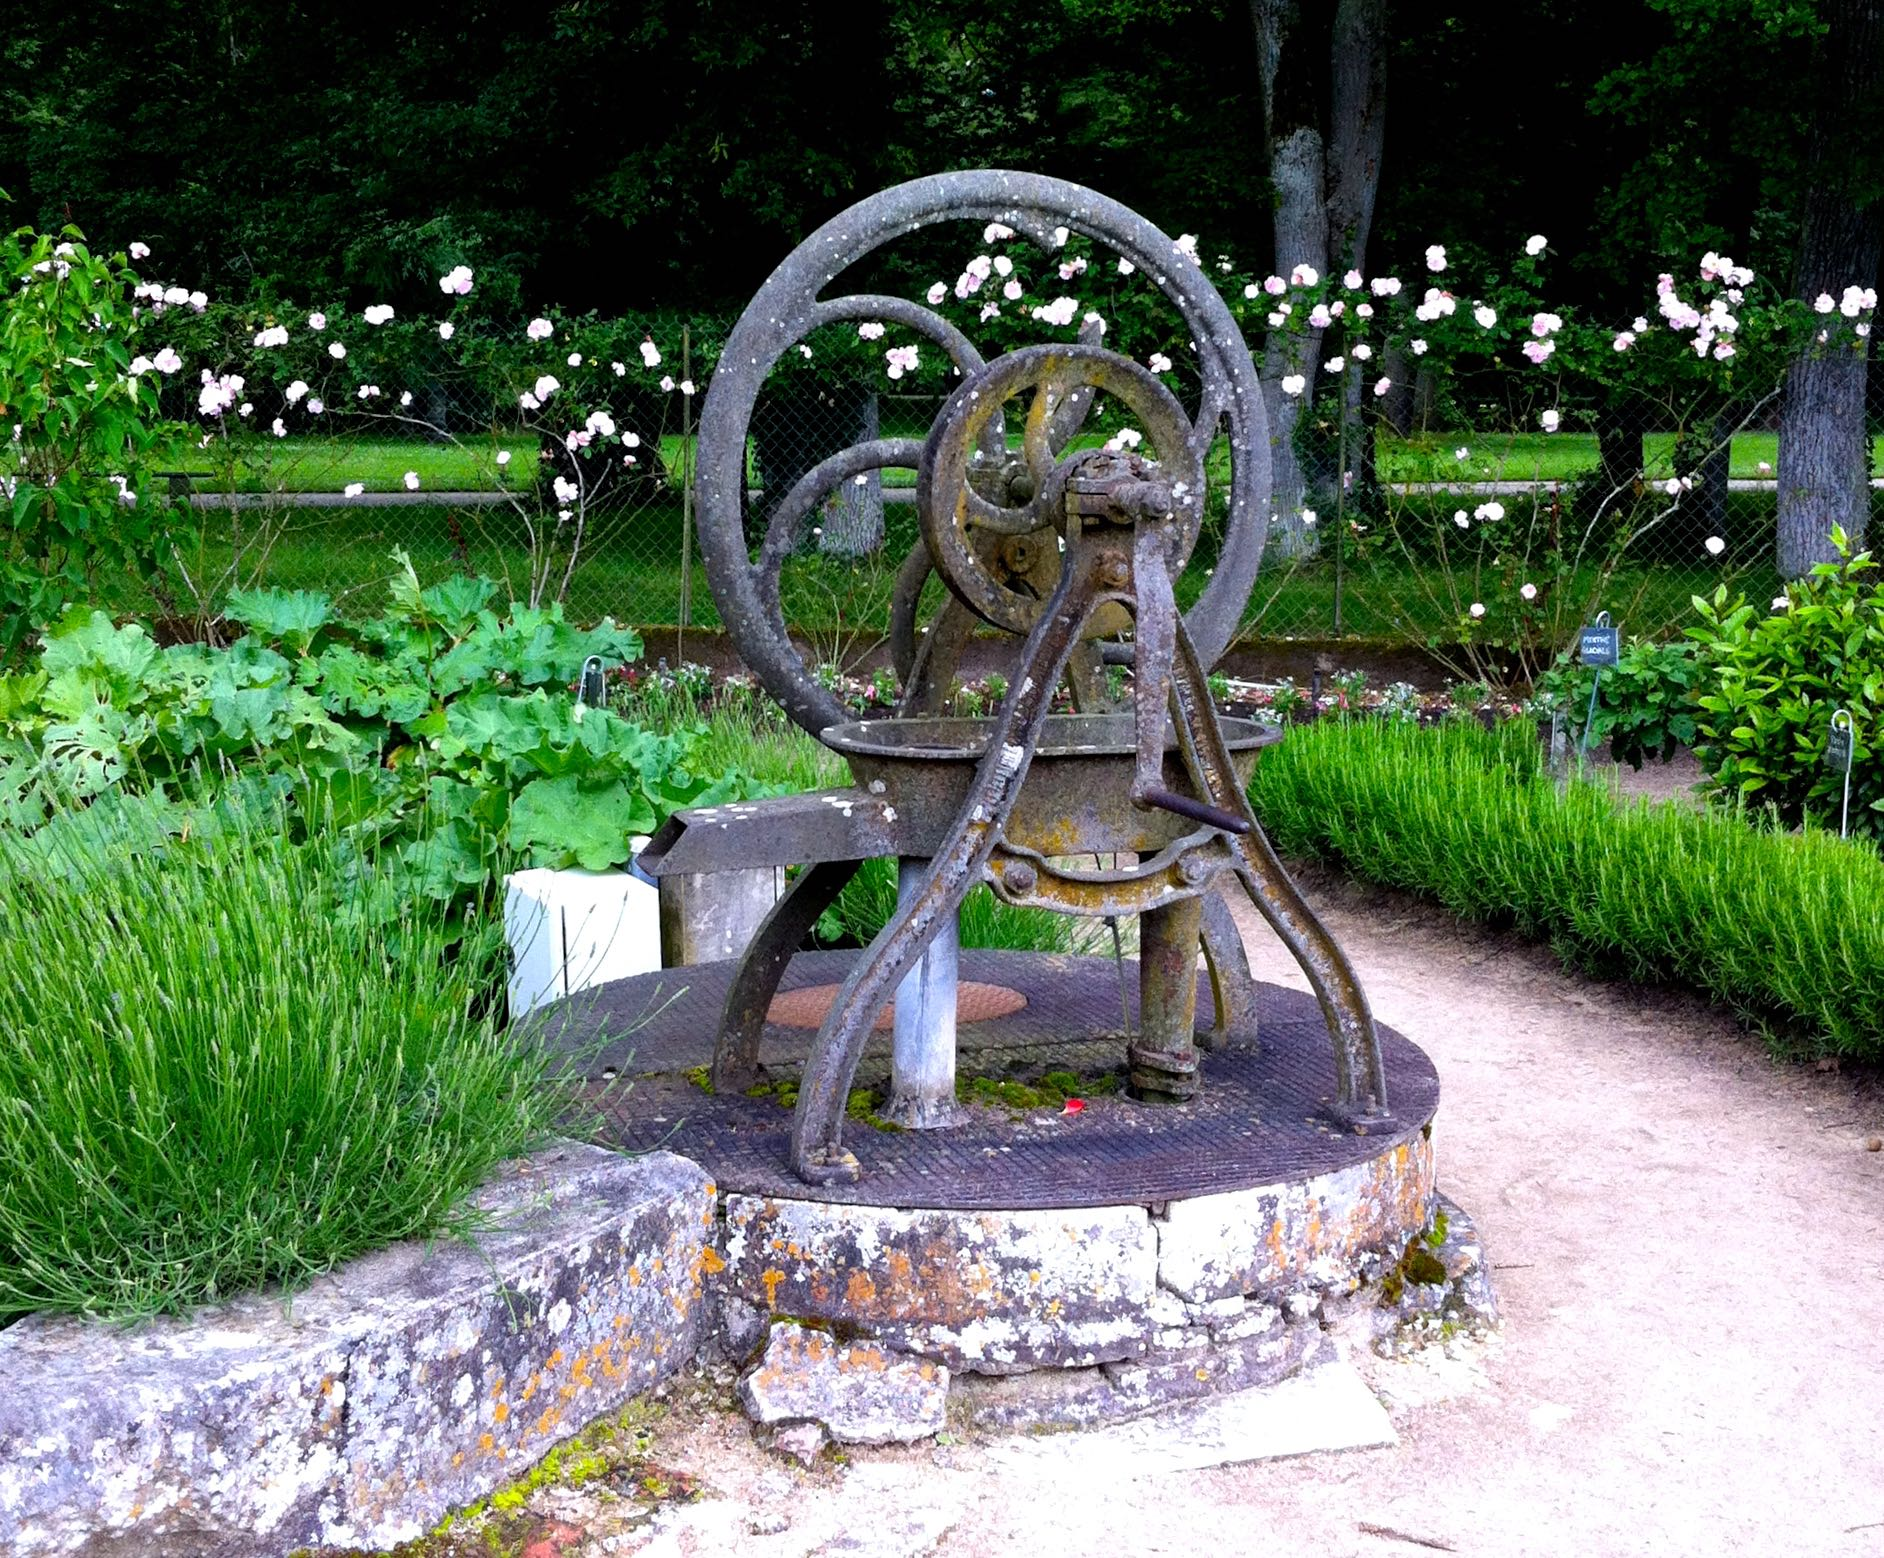 the garden at chateau de chenonceau was interspersed with some intriguing items like this well head